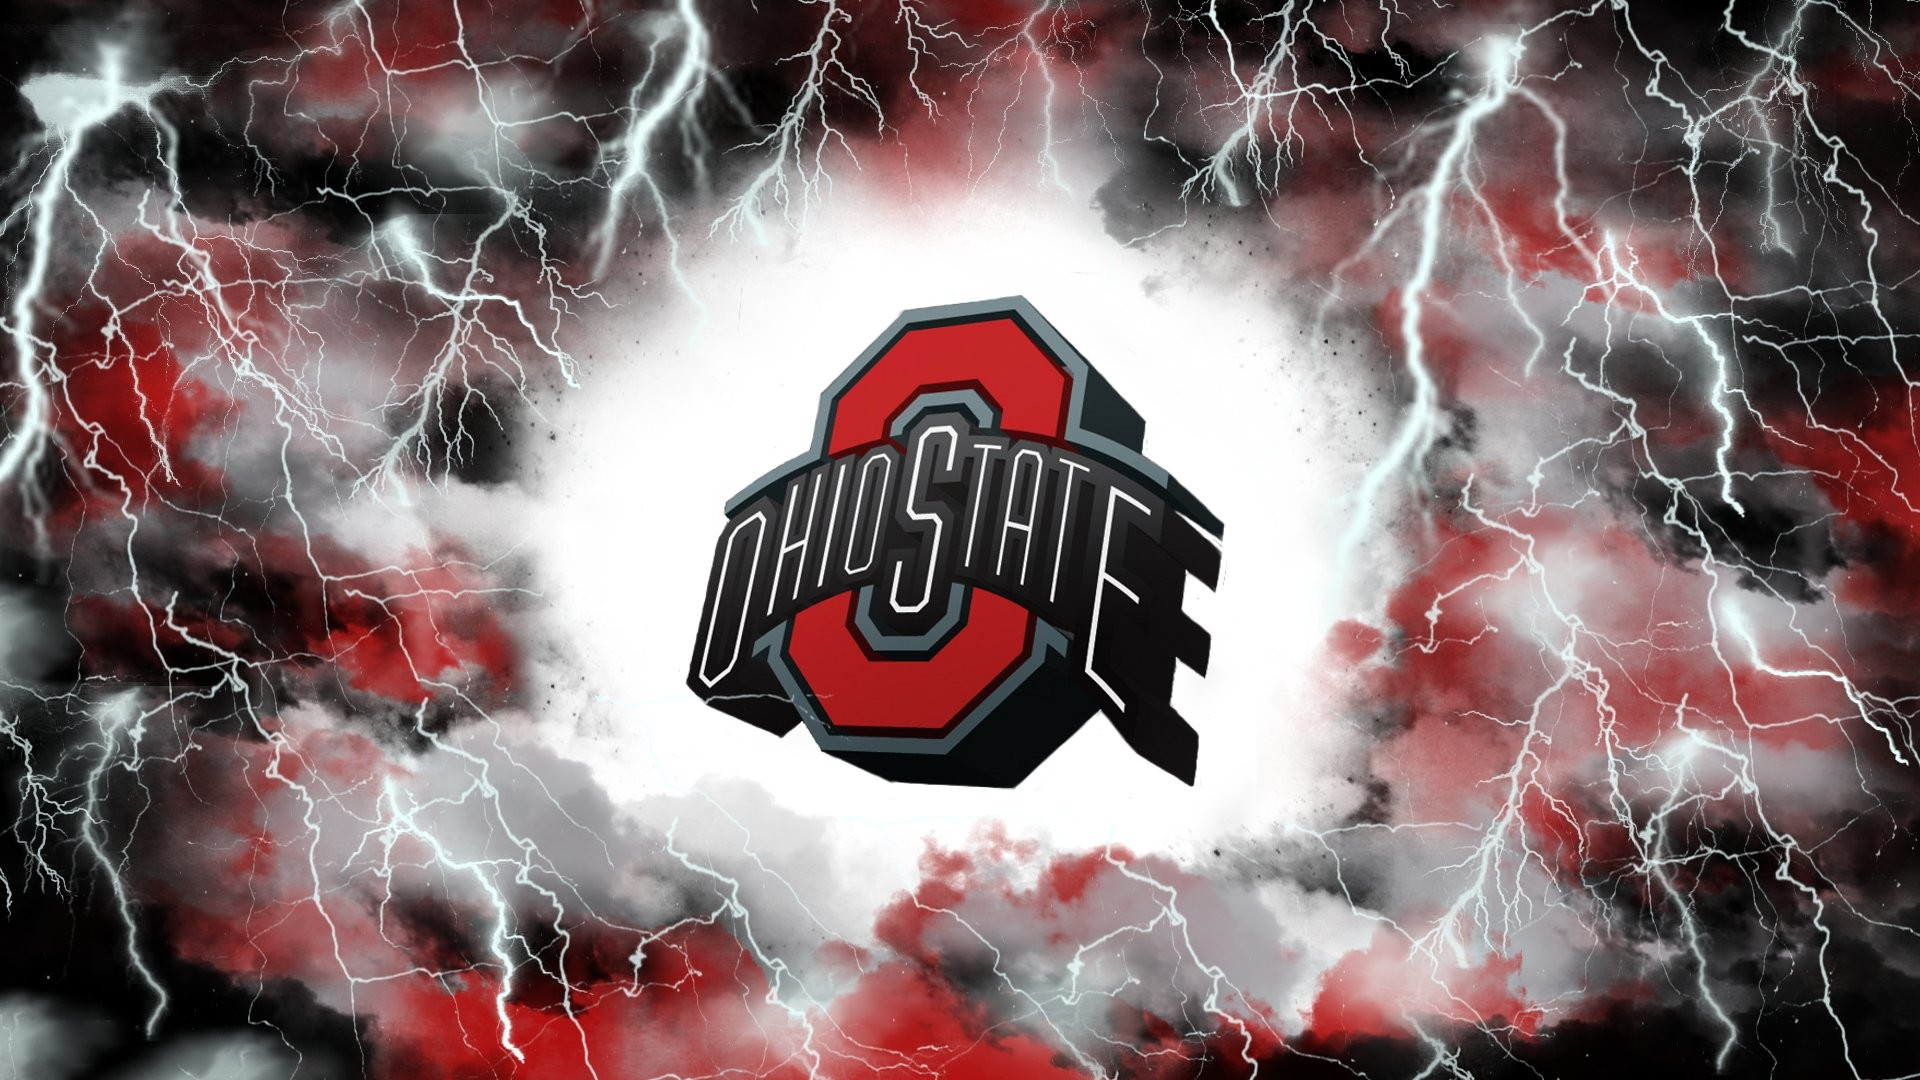 … Fantastic Ohio State Football Wallpapers Magic Wallpapers HQ Wallpapers  Collection 4K Picture Wallpaper HD 1080p Free